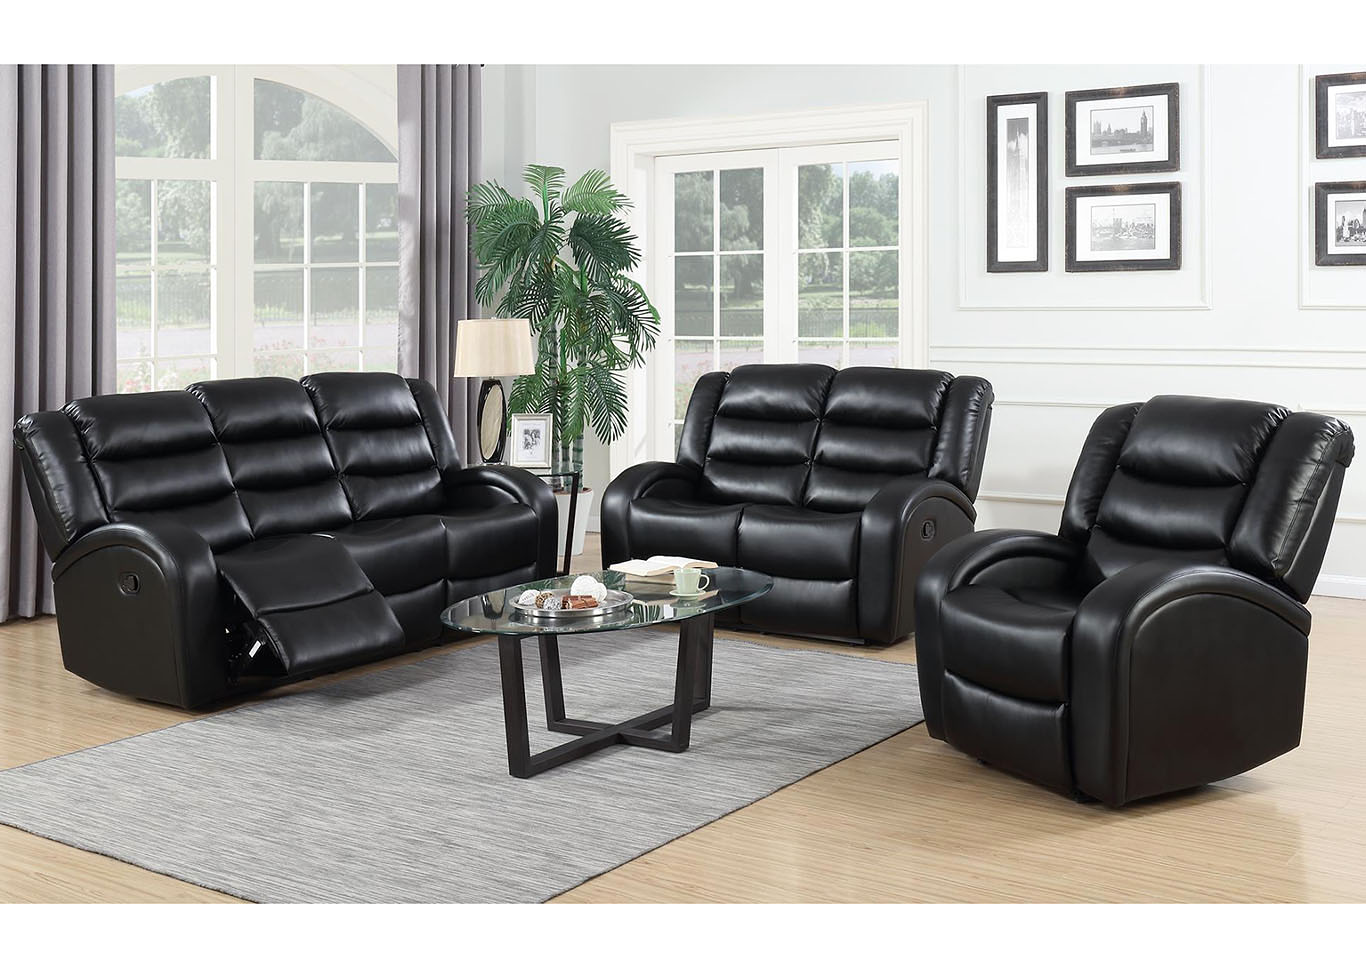 The Home Club Black Leather Reclining Sofa, Loveseat & Recliner